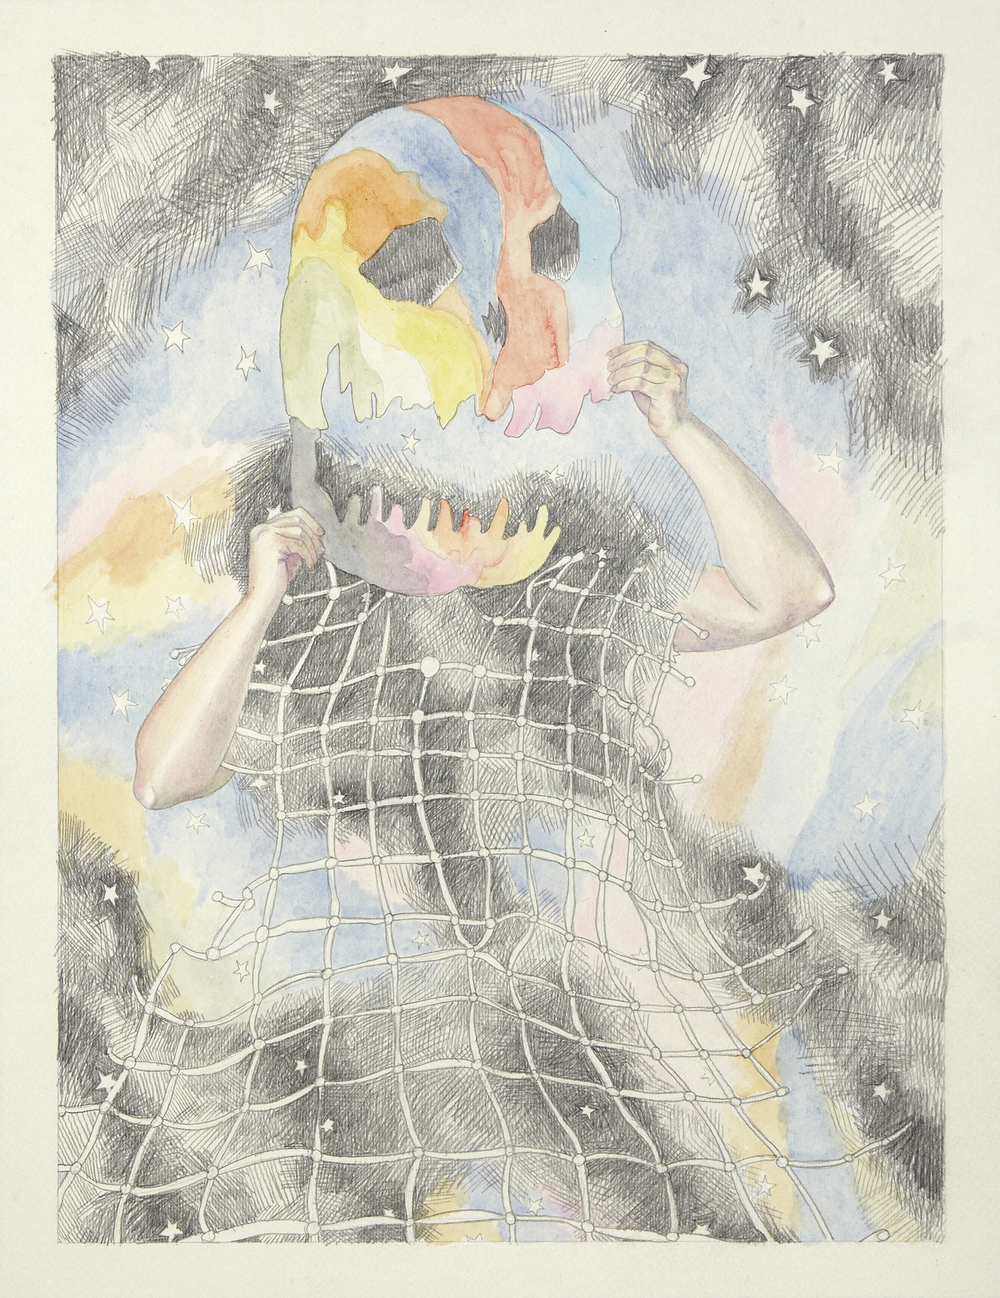 Skull and Death #2, 2012, Watercolour and pencil on paper, 30.0 x 40.0 cm, Photo: Sam Scoufos